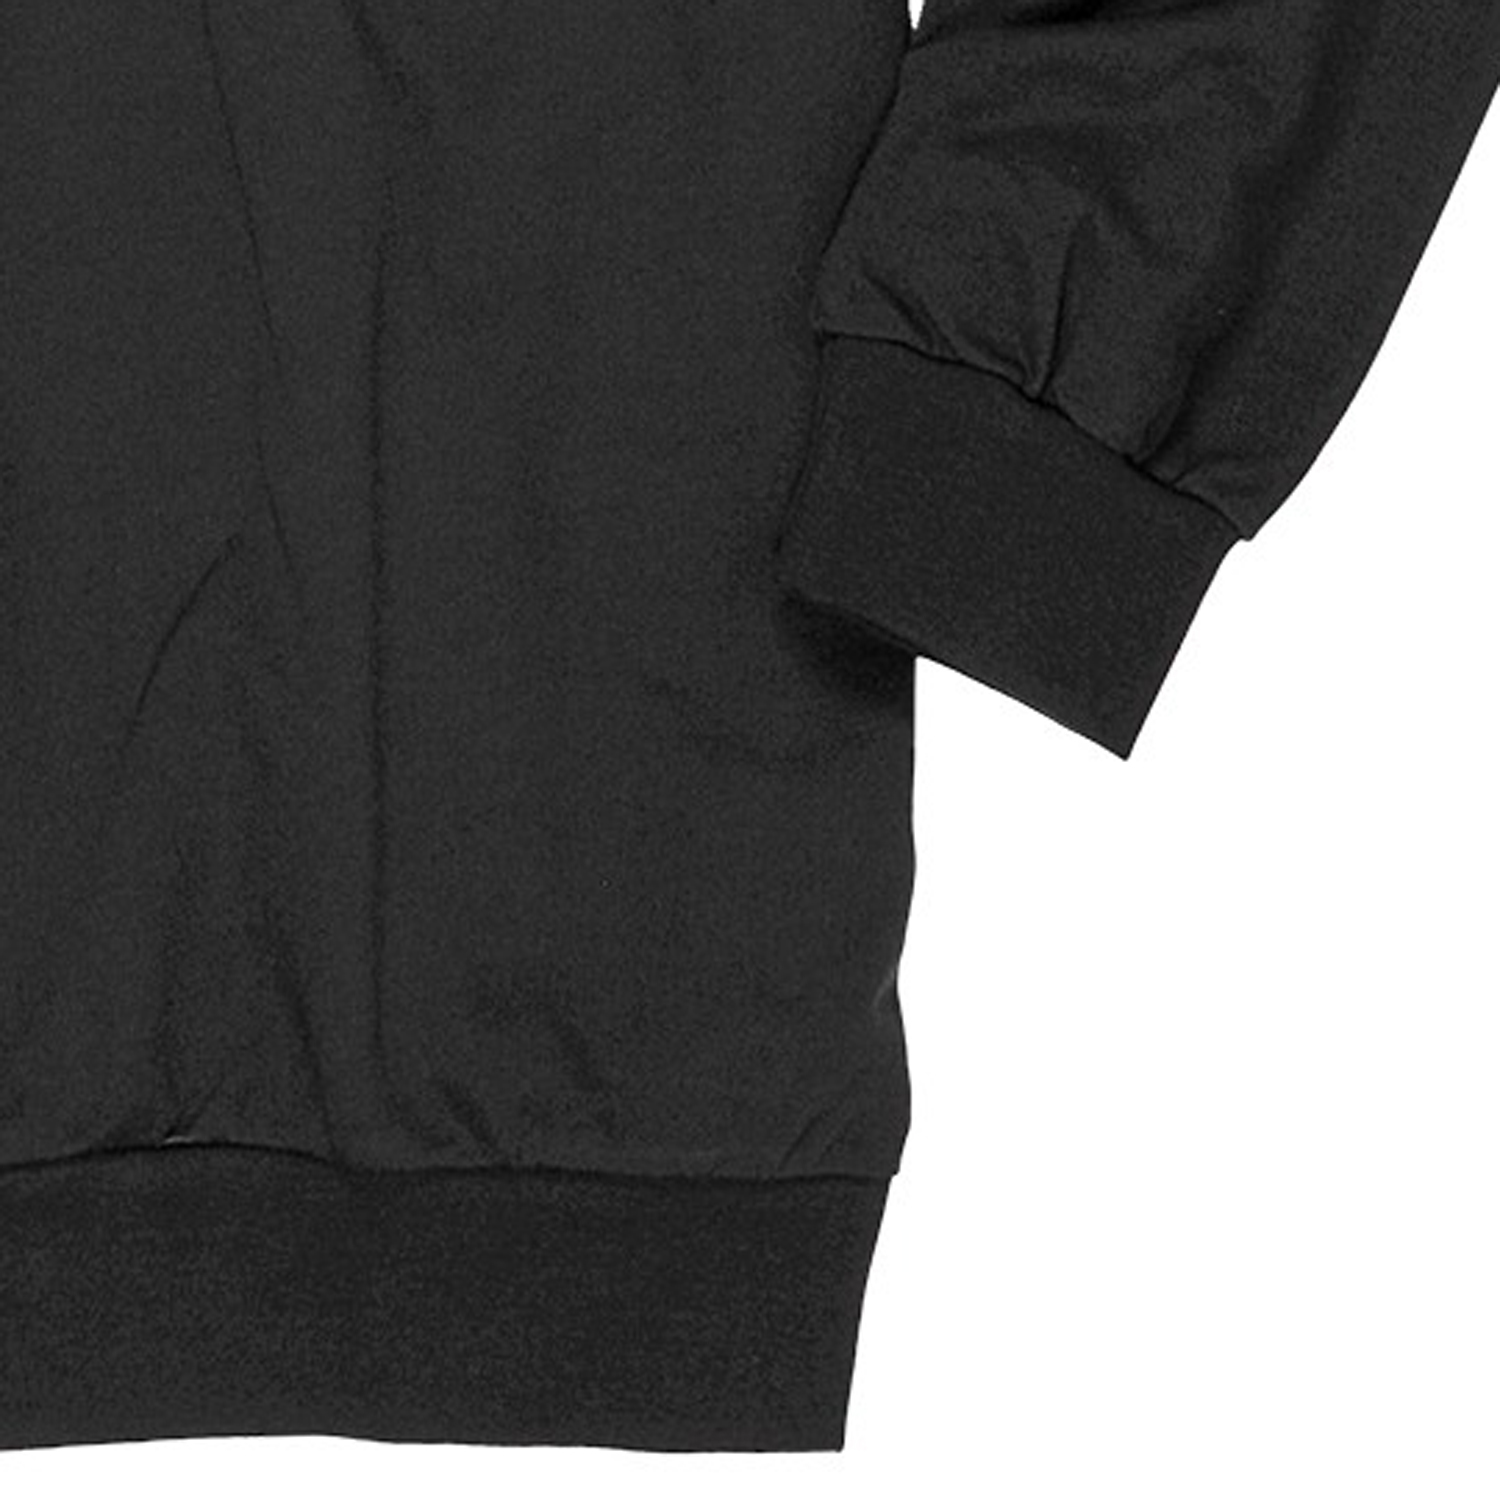 Detail Image to Sweatshirt with fine lining in black by Ahorn Sportswear up to oversize 10XL